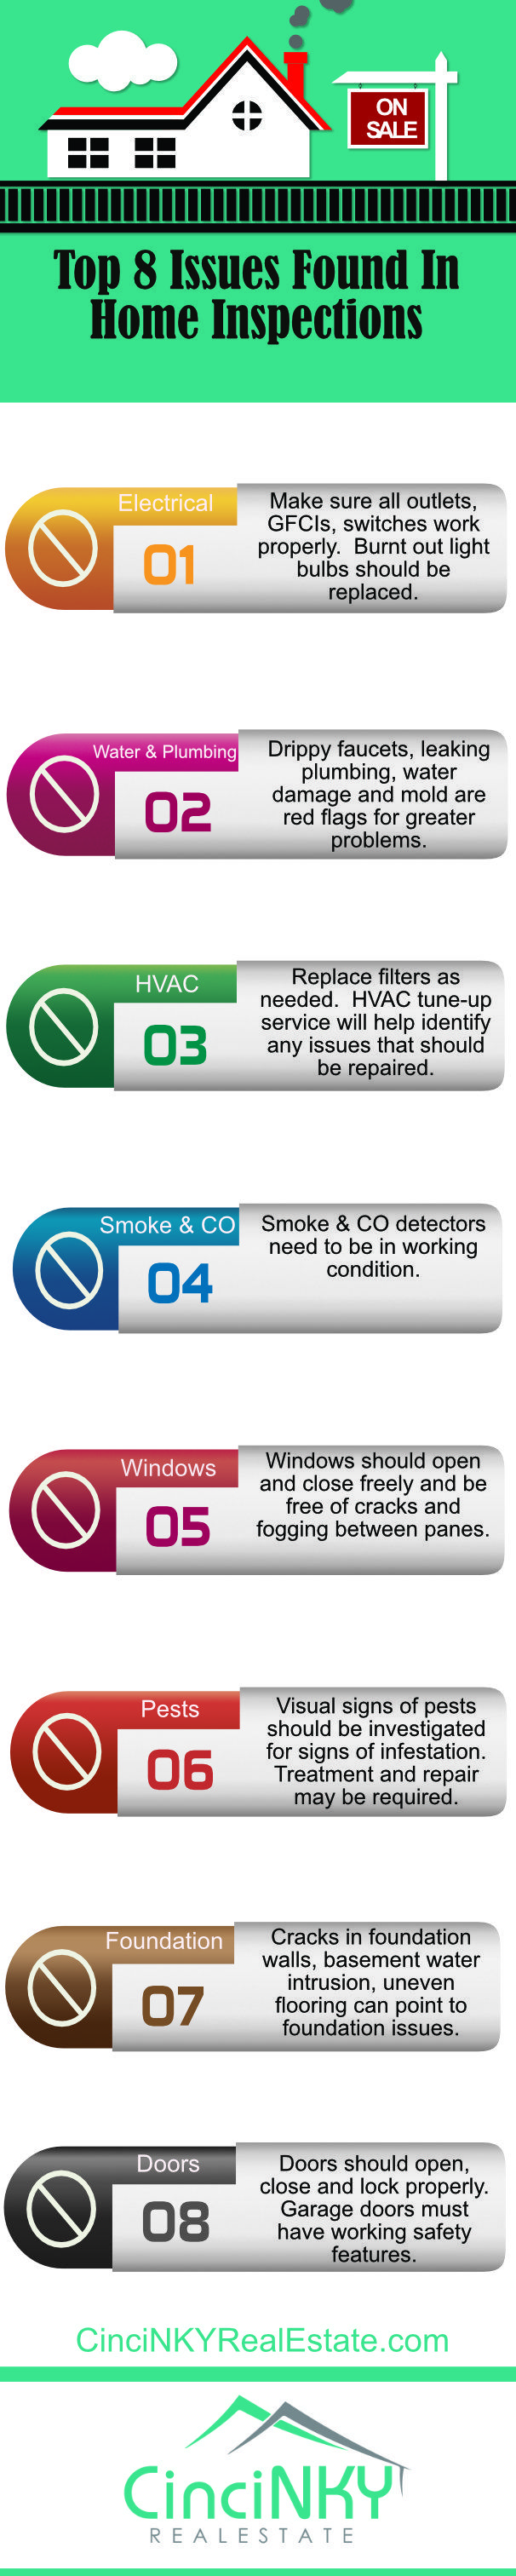 Selling your house checklist - Top 8 Issues Found In Home Inspections Infographic